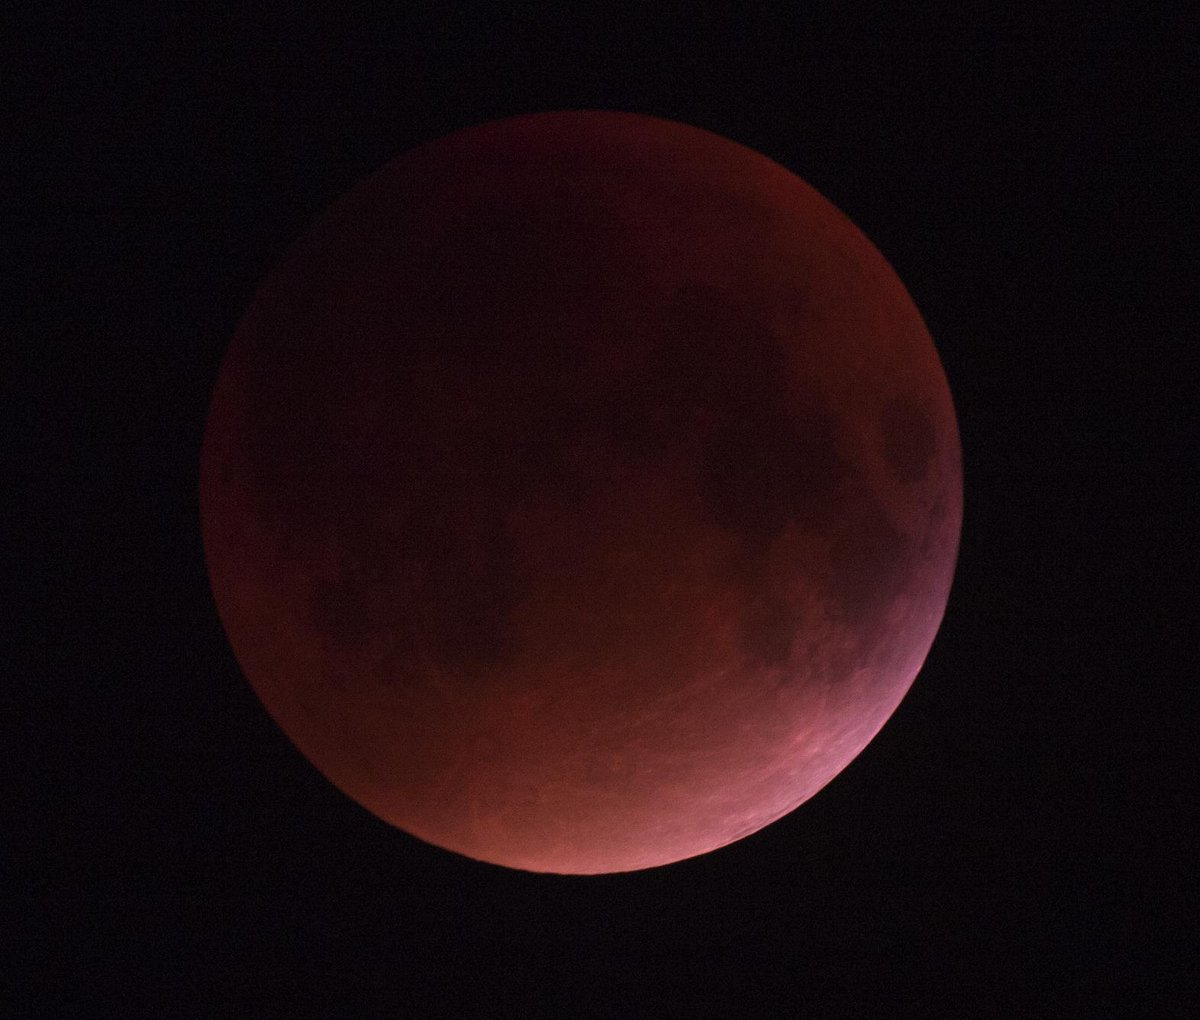 blood moon - quick single frame http://t.co/kYV31DHOtx